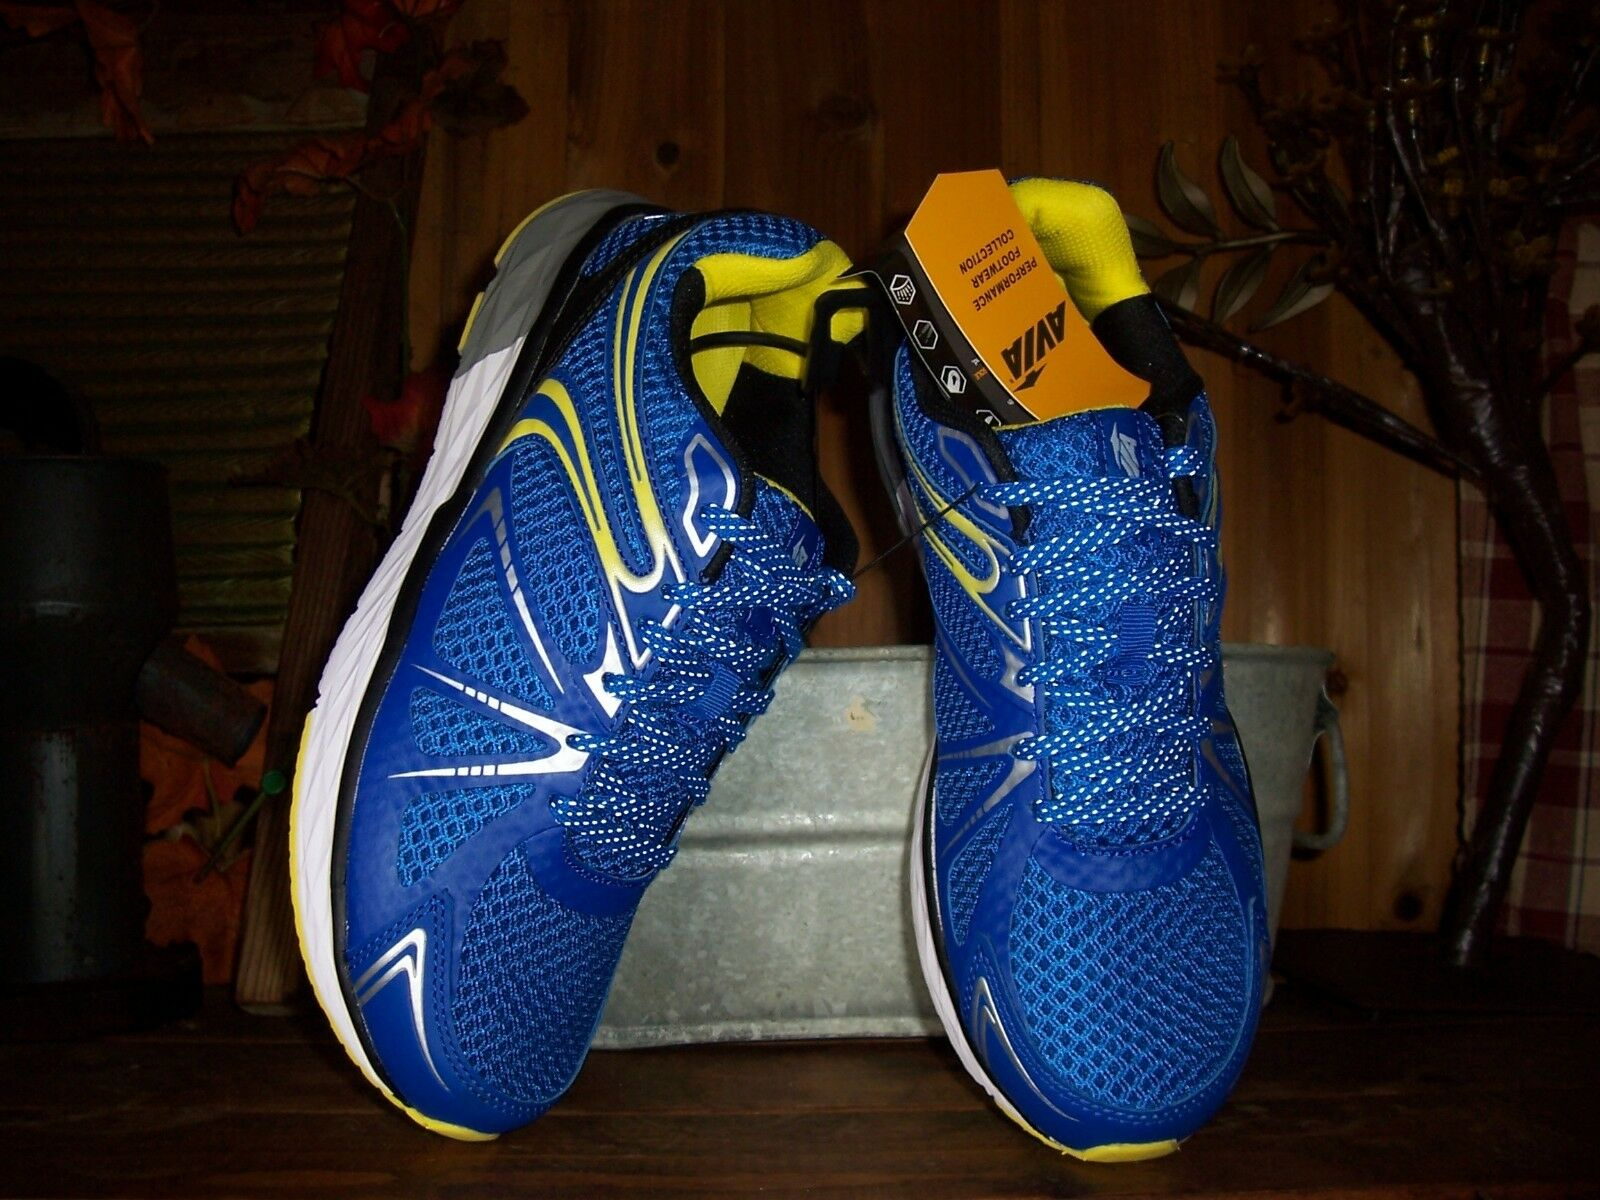 AVIA MENS ATHLETIC SHOES SIZE 12 blueE YELLOW CASUAL SNEAKERS LACE UP STYLISH NEW